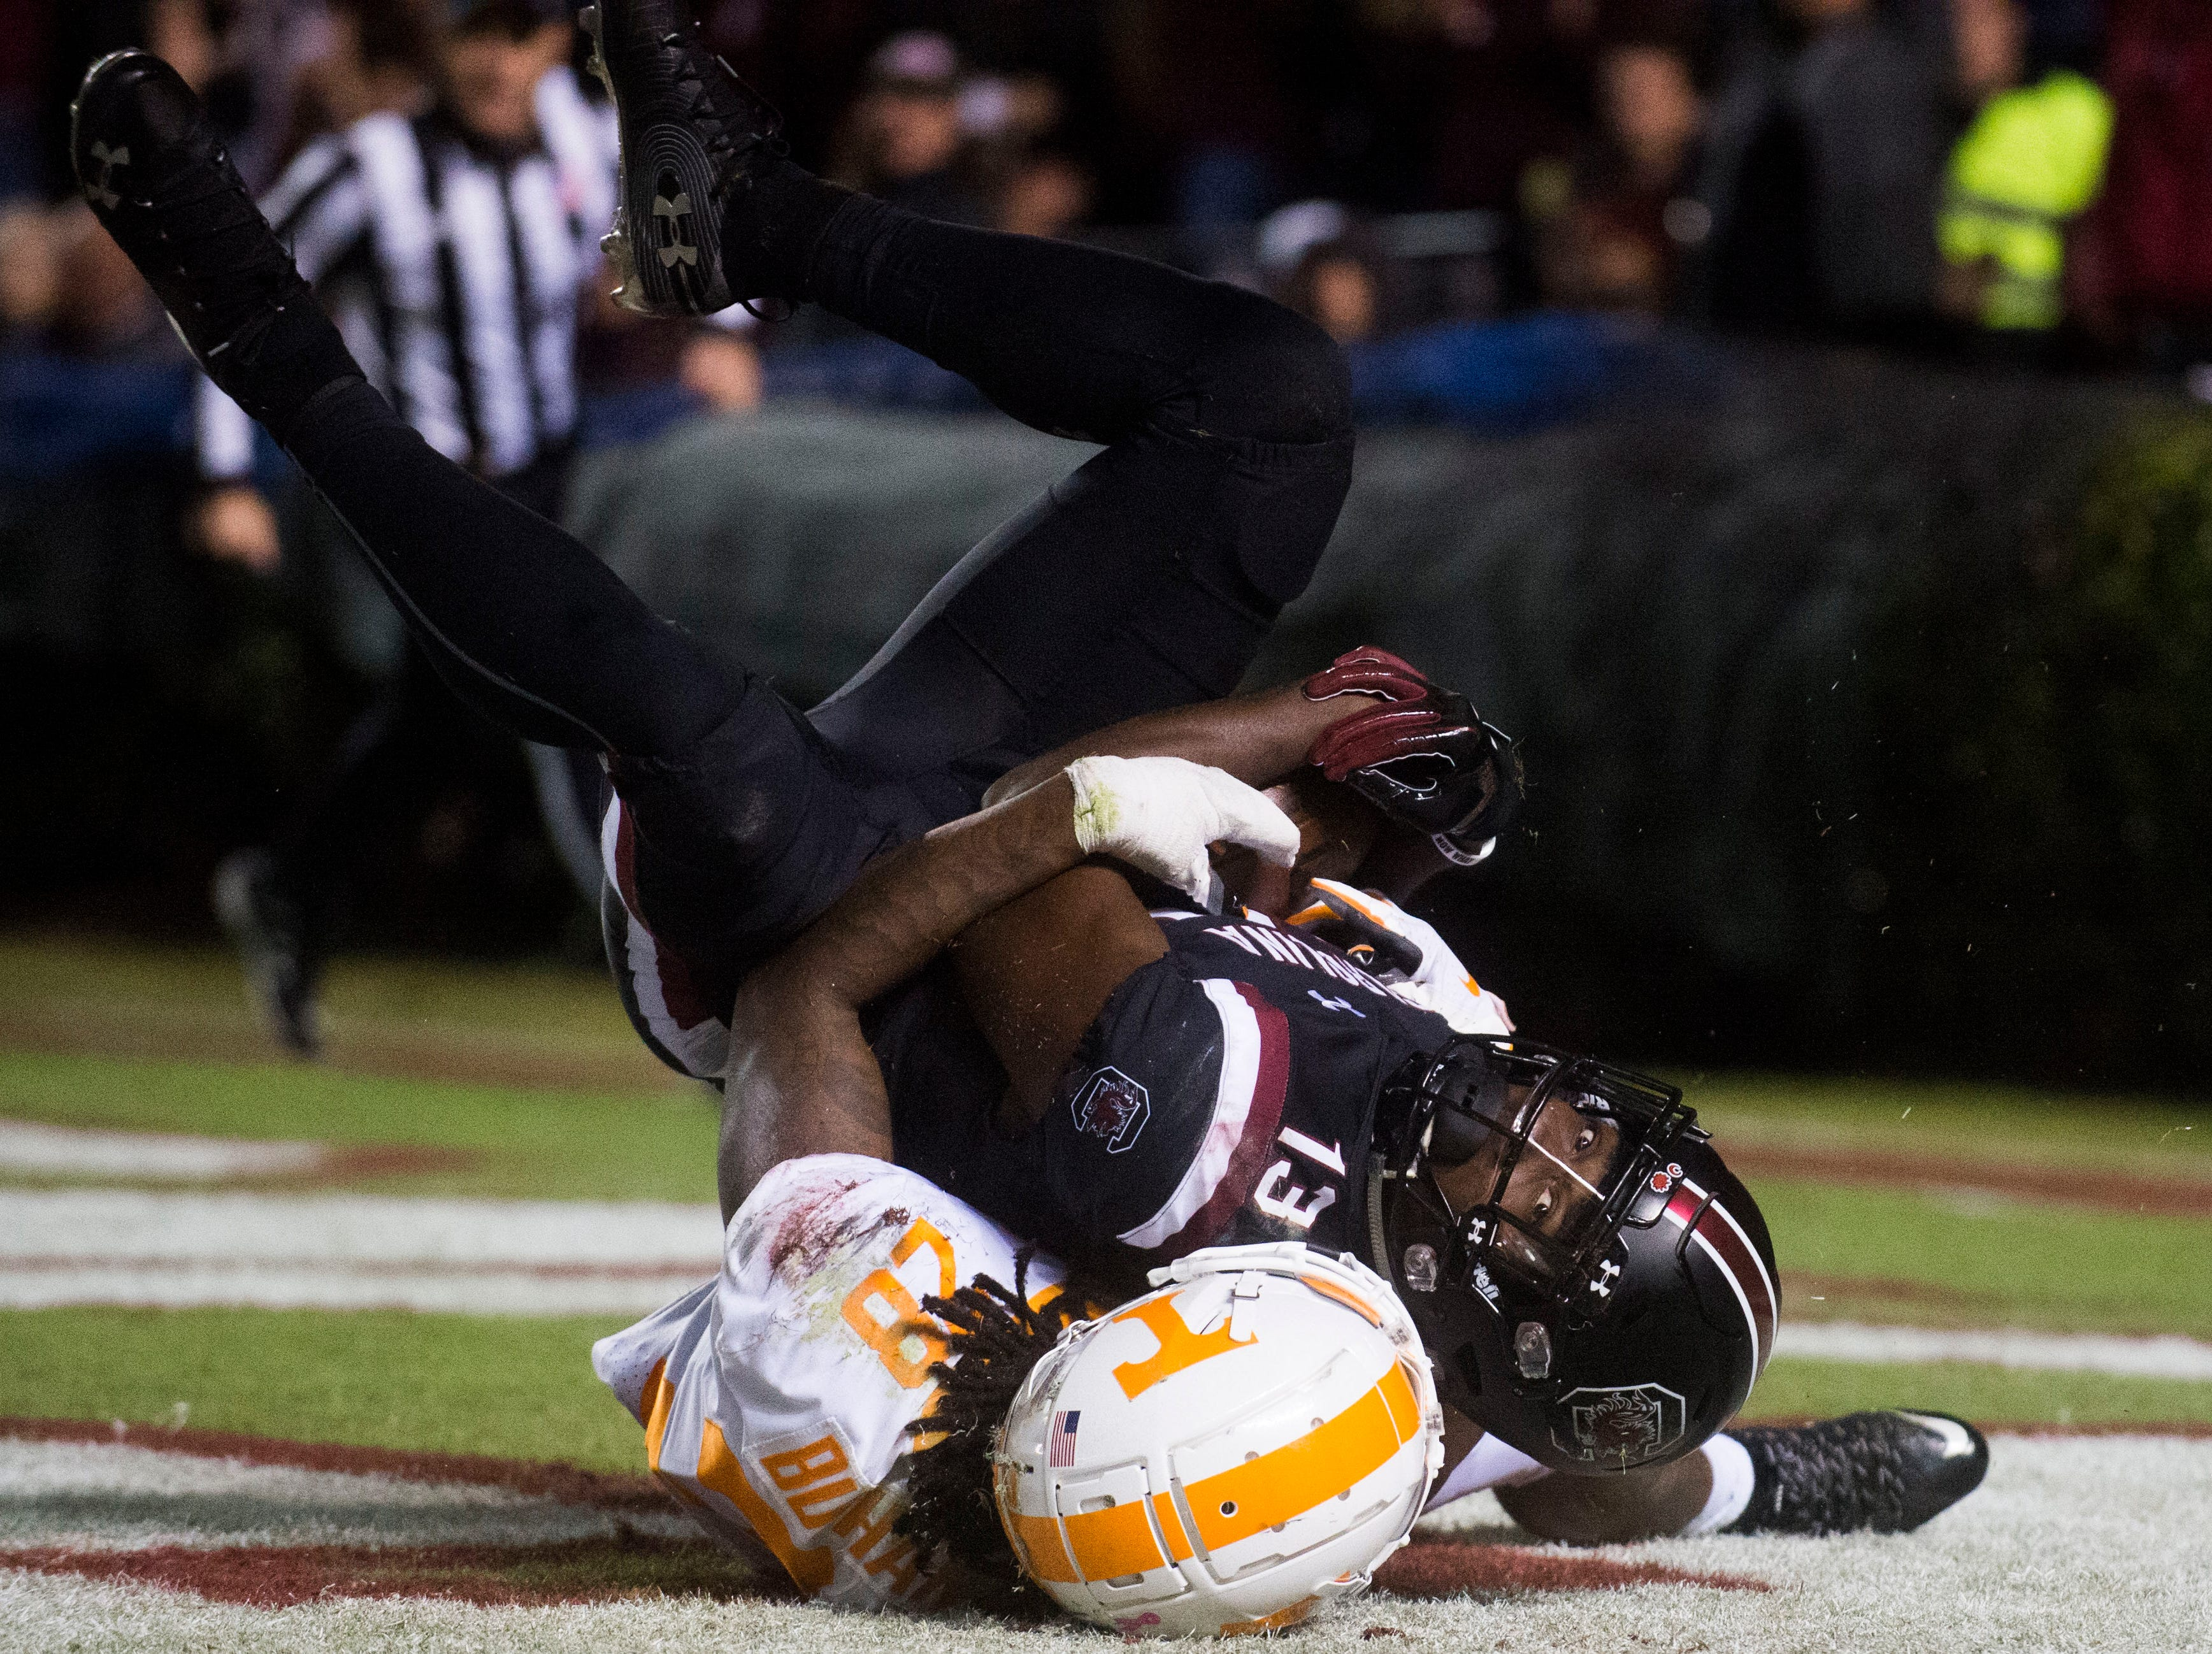 Tennessee defensive back Baylen Buchanan (28) takes down South Carolina wide receiver Shi Smith (13) in the end zone, and causes him to fumble the ball, during a game between Tennessee and South Carolina at Williams-Brice Stadium Saturday, Oct. 27, 2018. South Carolina defeated Tennessee 27-24.